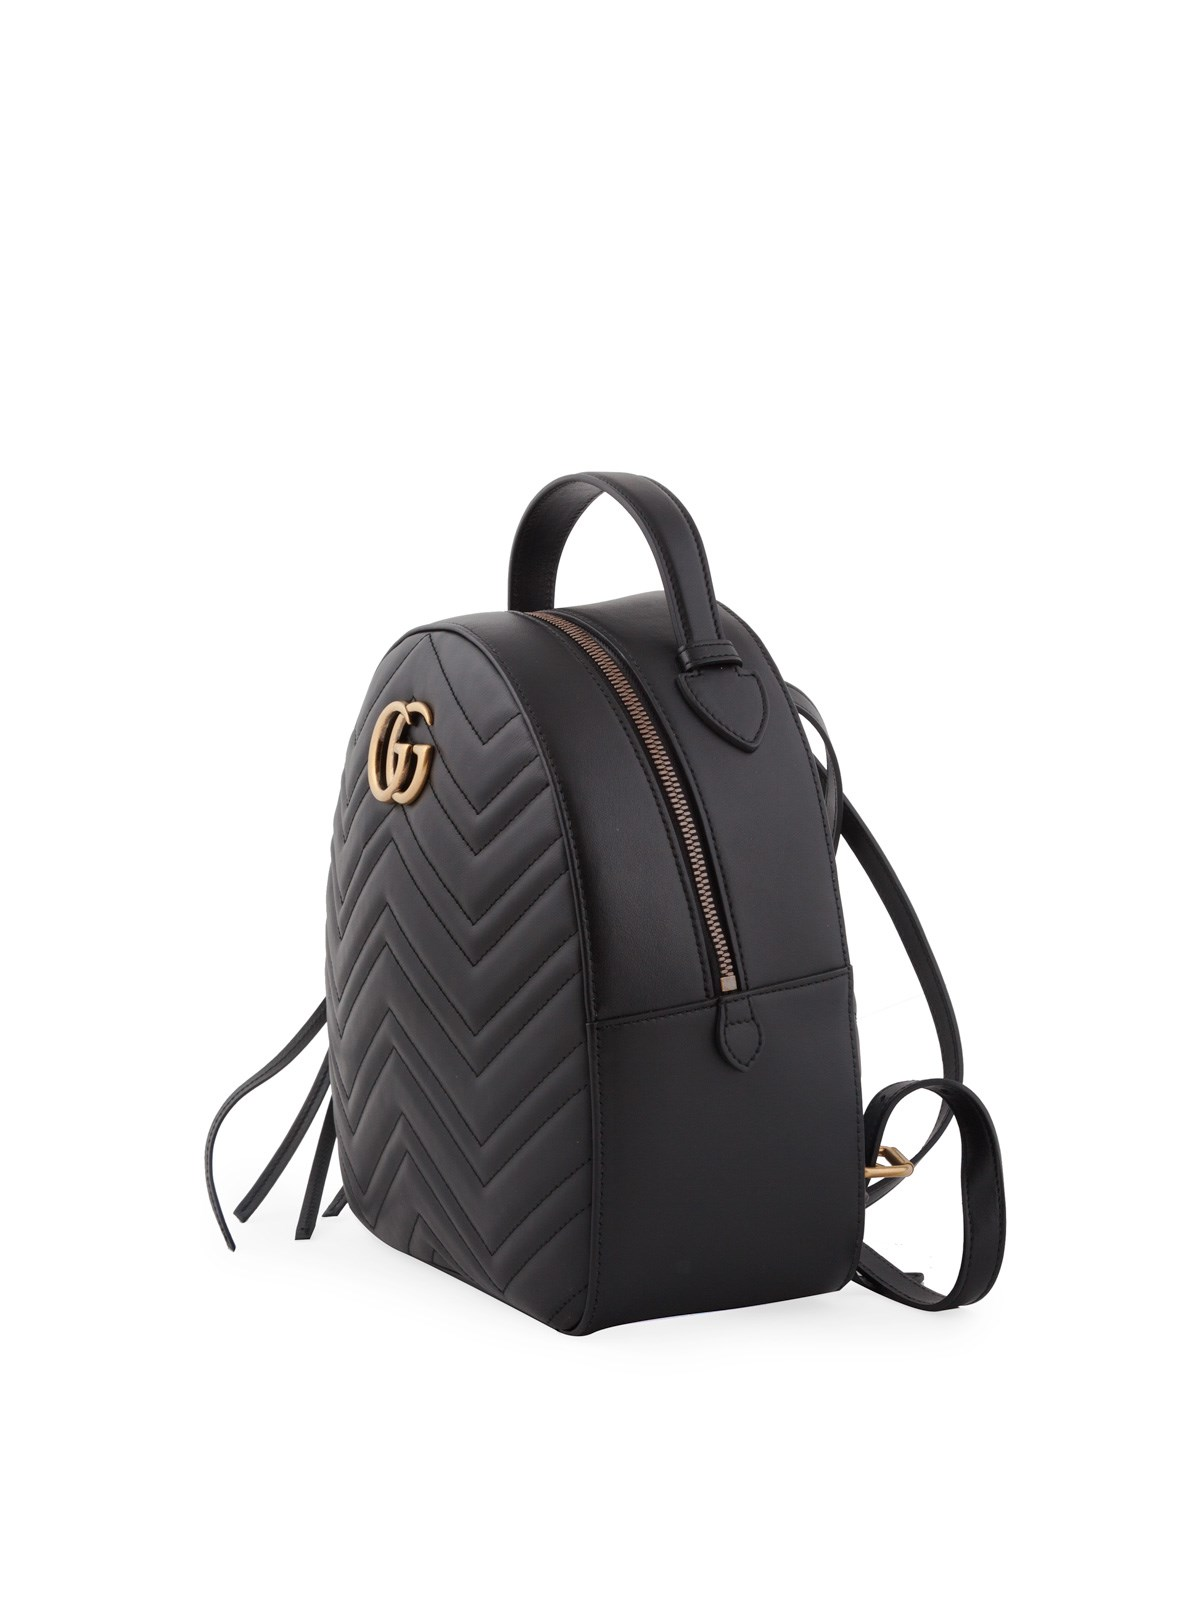 8f1c92f9bab gucci GG MARMONT QUILTED LEATHER BACKPACK available on montiboutique ...